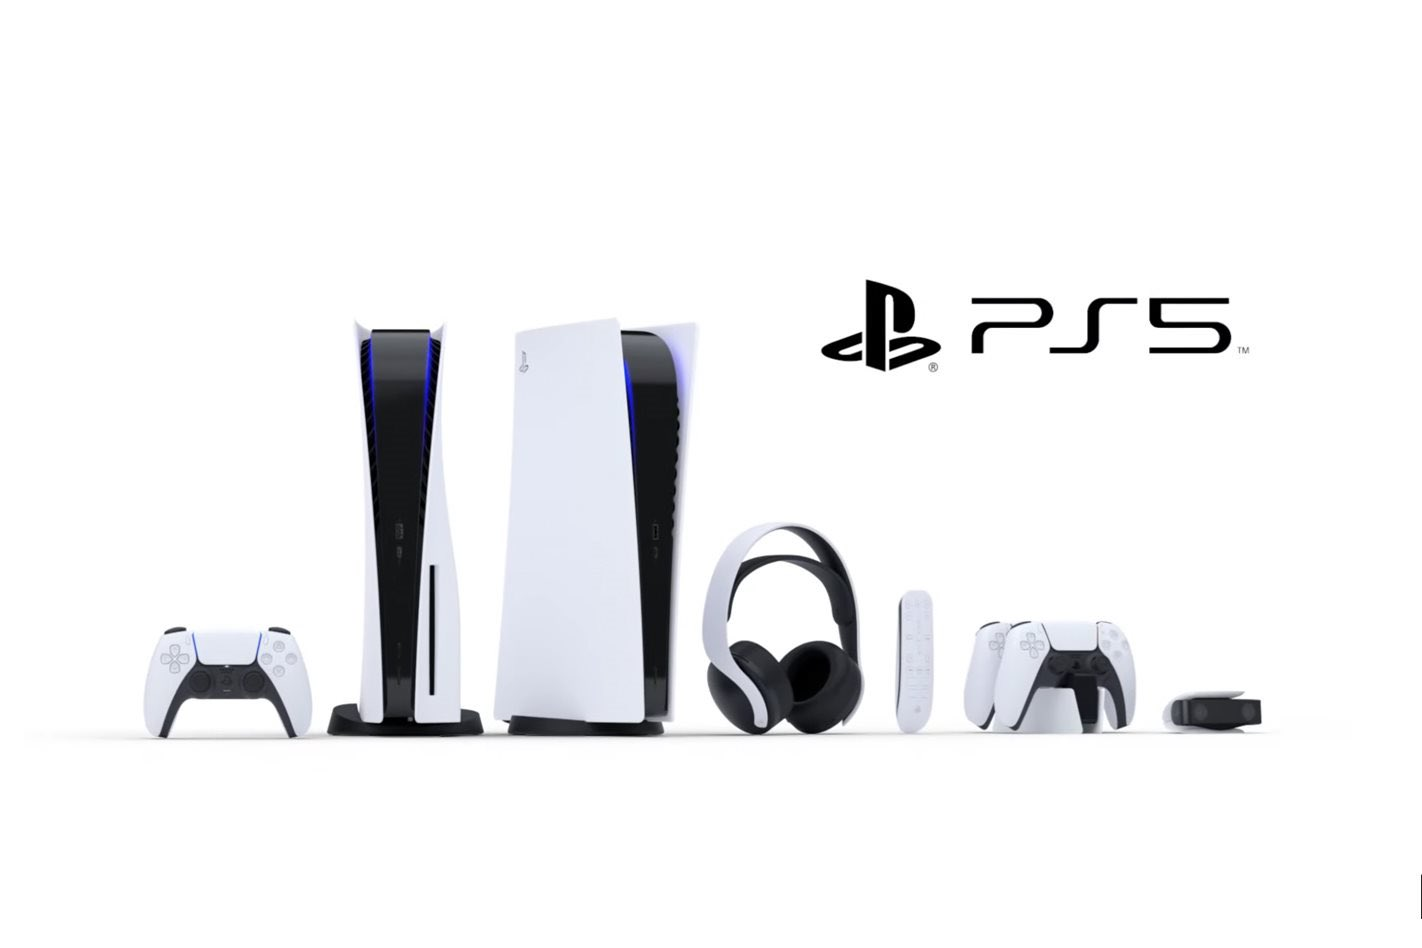 Playstation 5 consoles and controllers